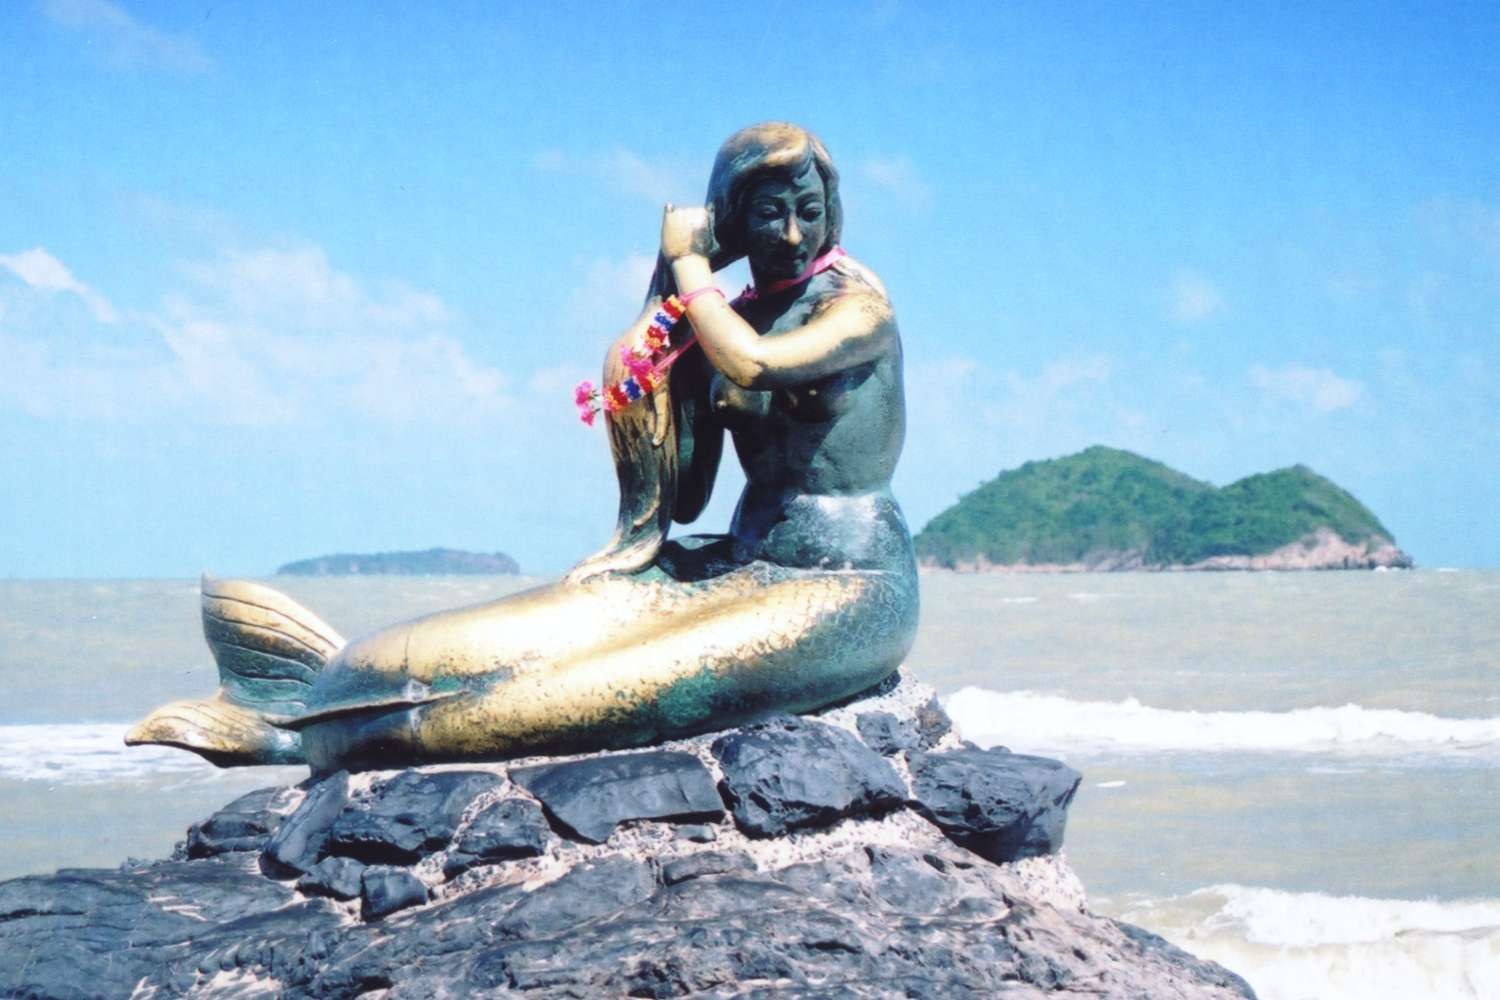 http://de.academic.ru/pictures/dewiki/115/songkhla_mermaid.jpg